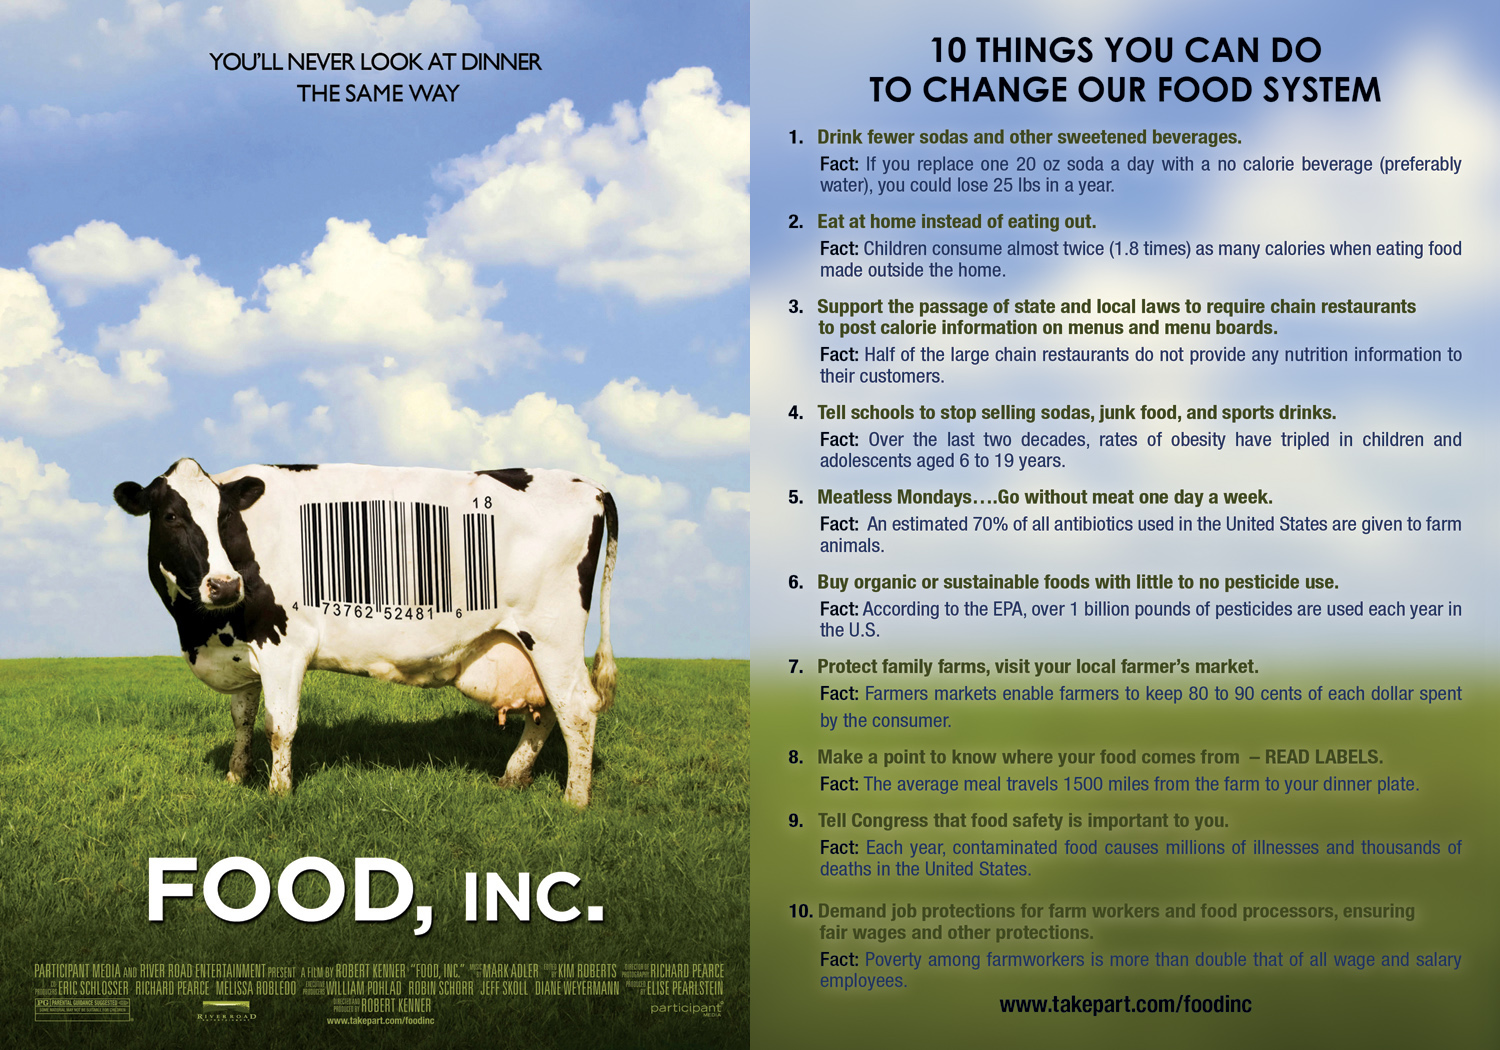 Food inc movie review essay examples